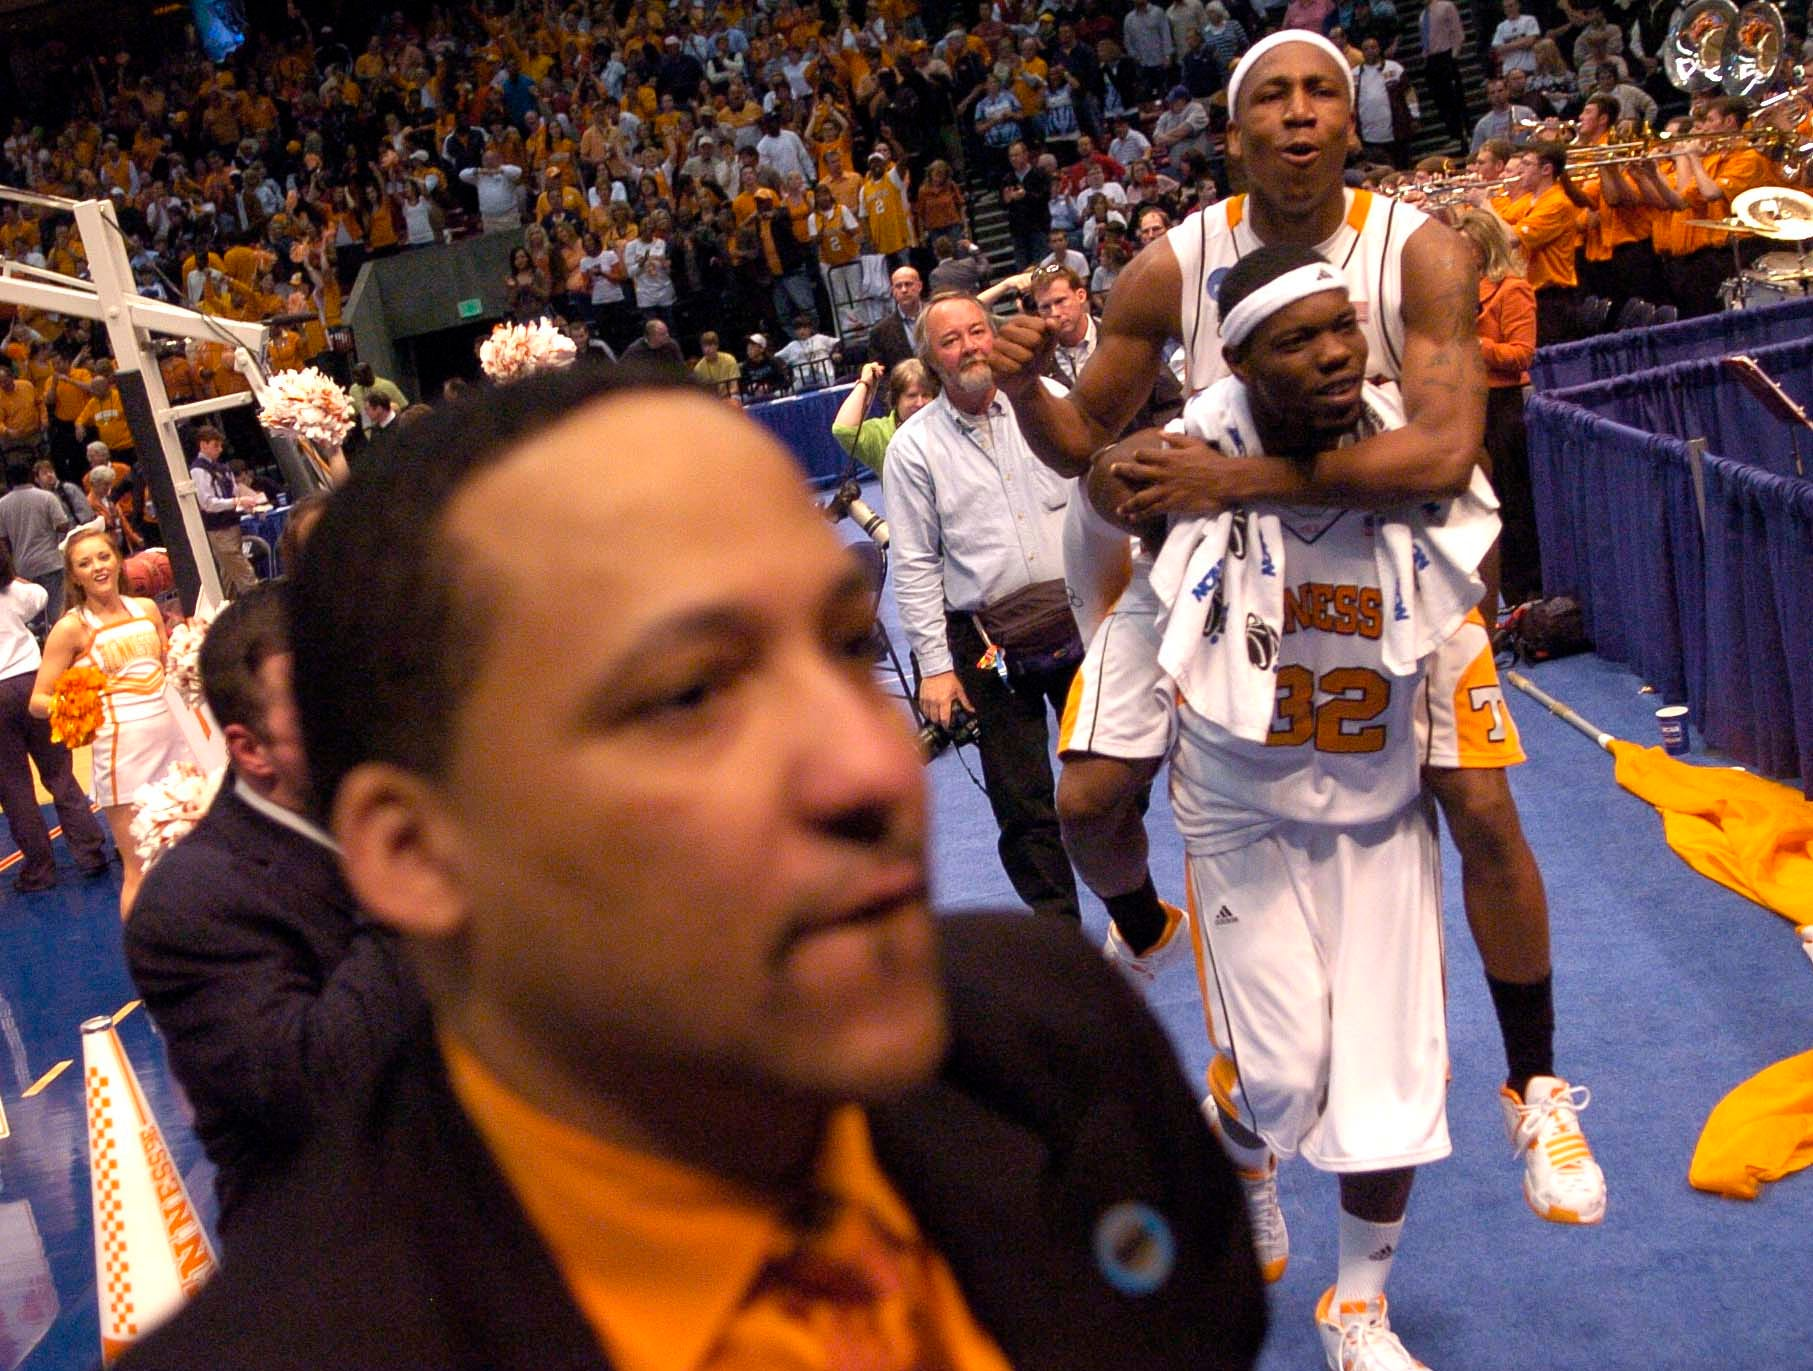 Tennessee's JaJuan Smith and Duke Crews celebrate after the win over Butler at the Birmingham Jefferson Convention Center in Birmingham, Alabama during second round play in the 2008 NCAA Tournament on Sunday. Tennessee defeated Butler 76-71 and will advance to the Sweet Sixteen in Charlotte, NC next week.